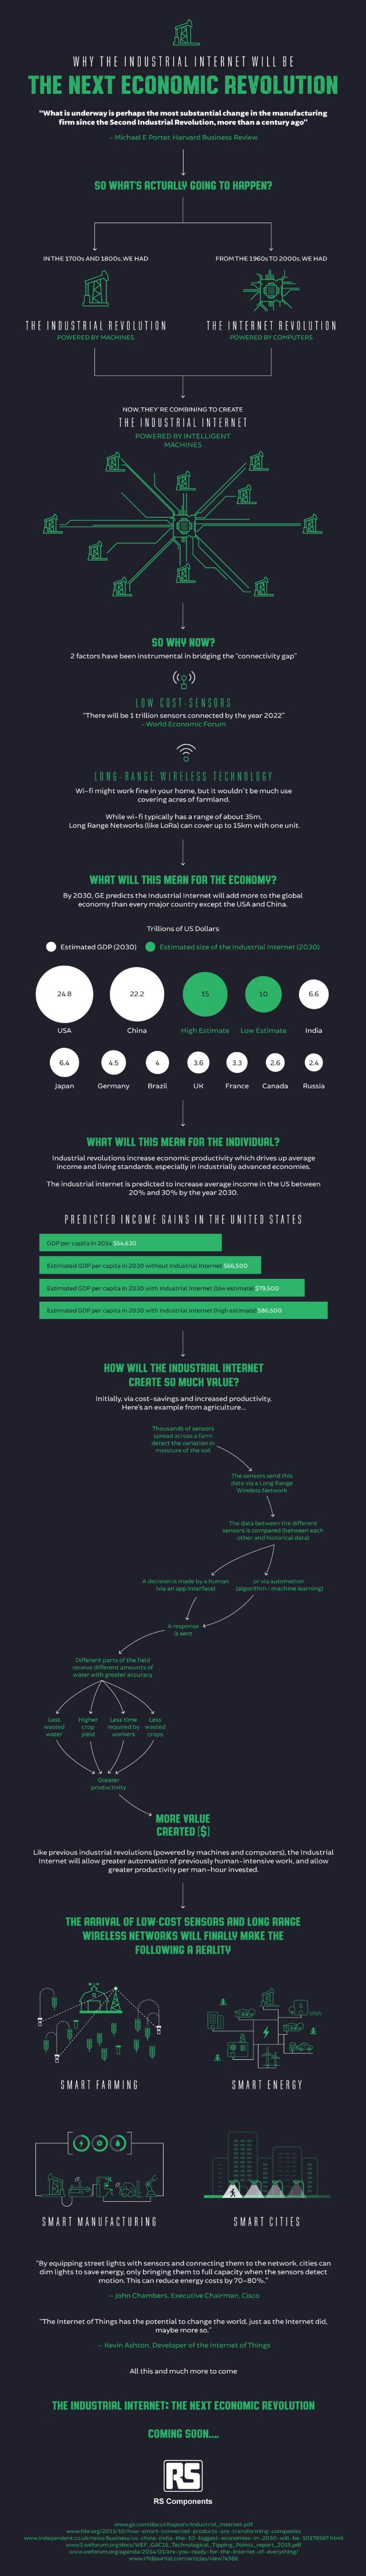 Yes #IoT is the next Industrial Revolution! Nice infographic. www.extentia.com/contact-us